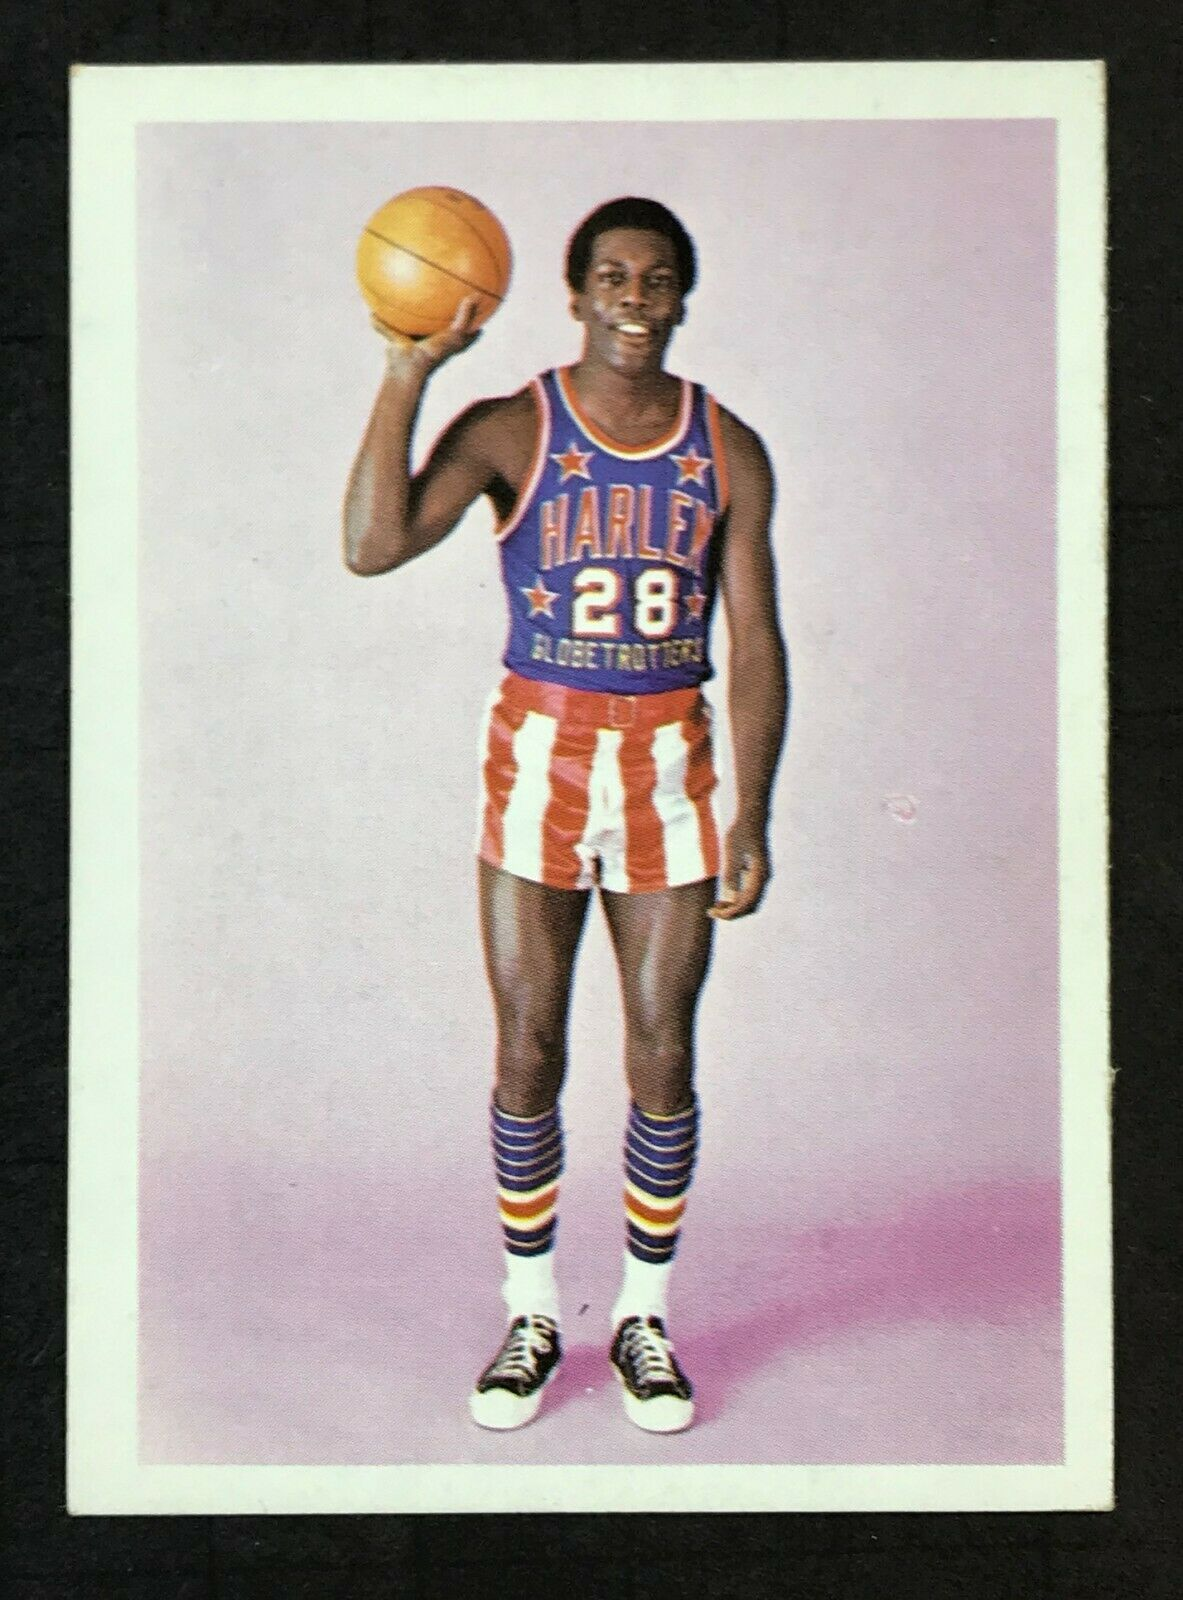 1972-73 Fleer Harlem Globetrotters #74 Bobby Hunter Rookie Basketball Card